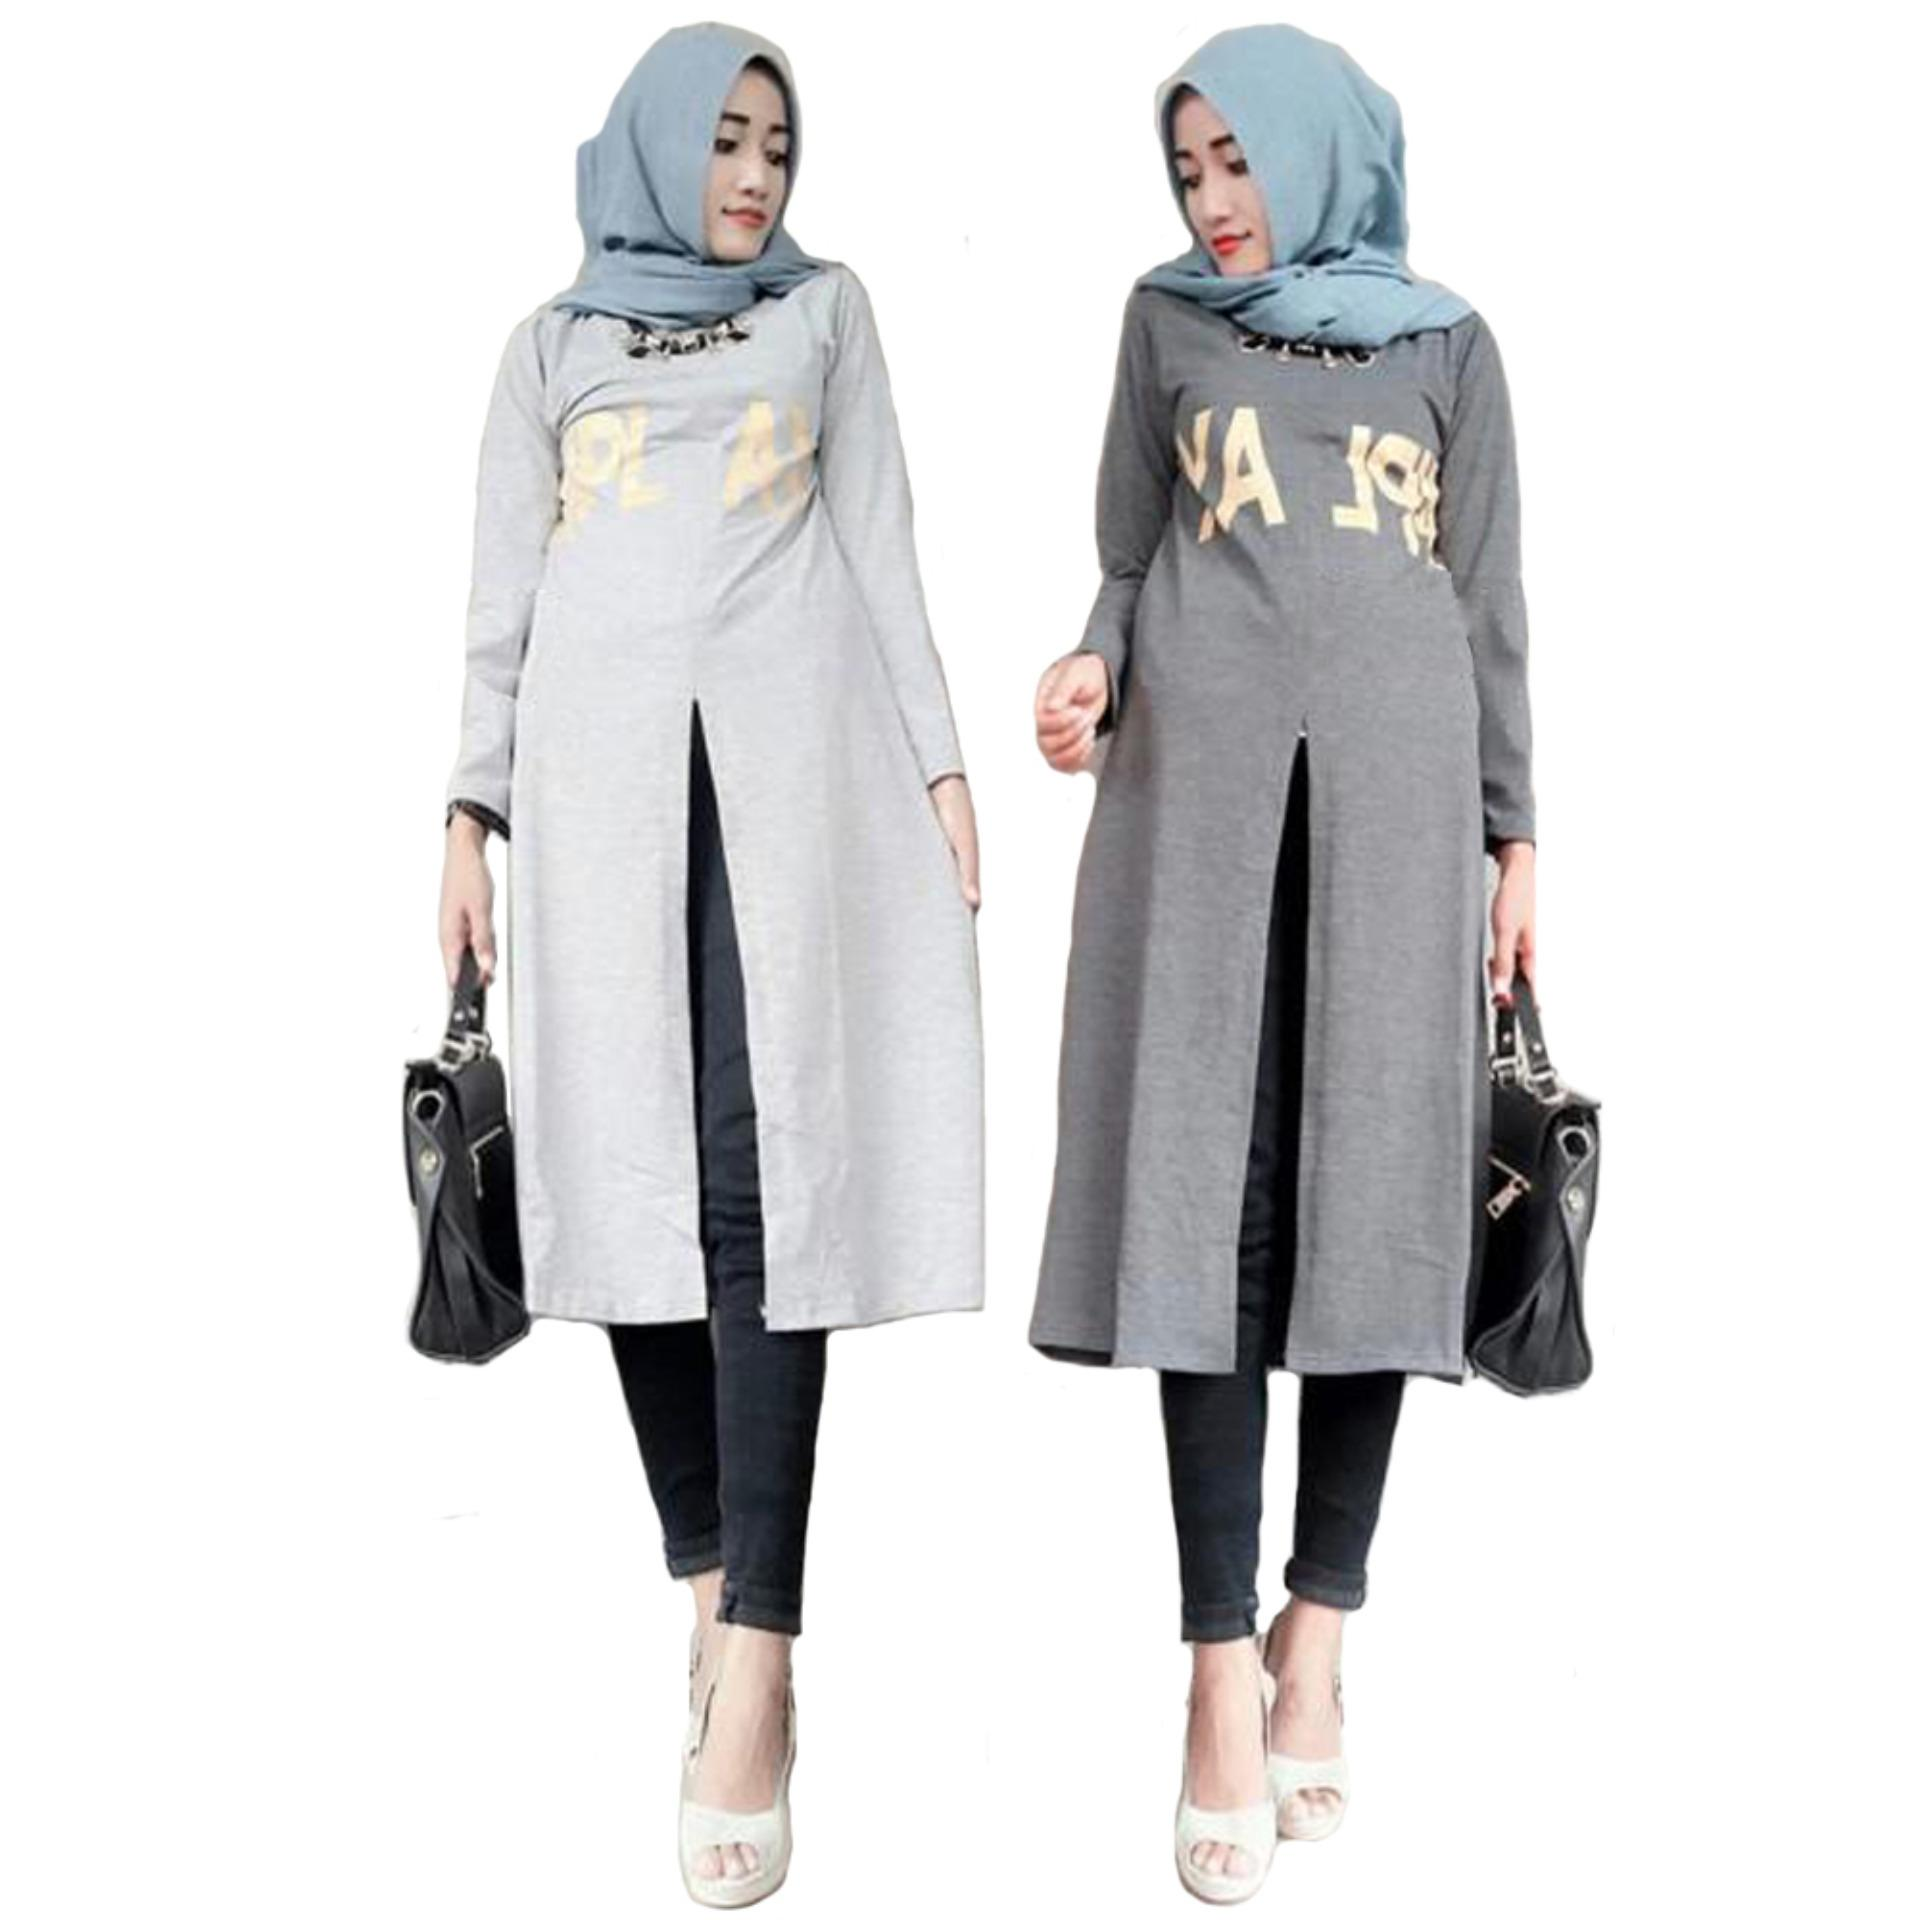 ... Tunik Atasan Wanita Blouse Muslim Tunik Play Long Top Abu abu Muda